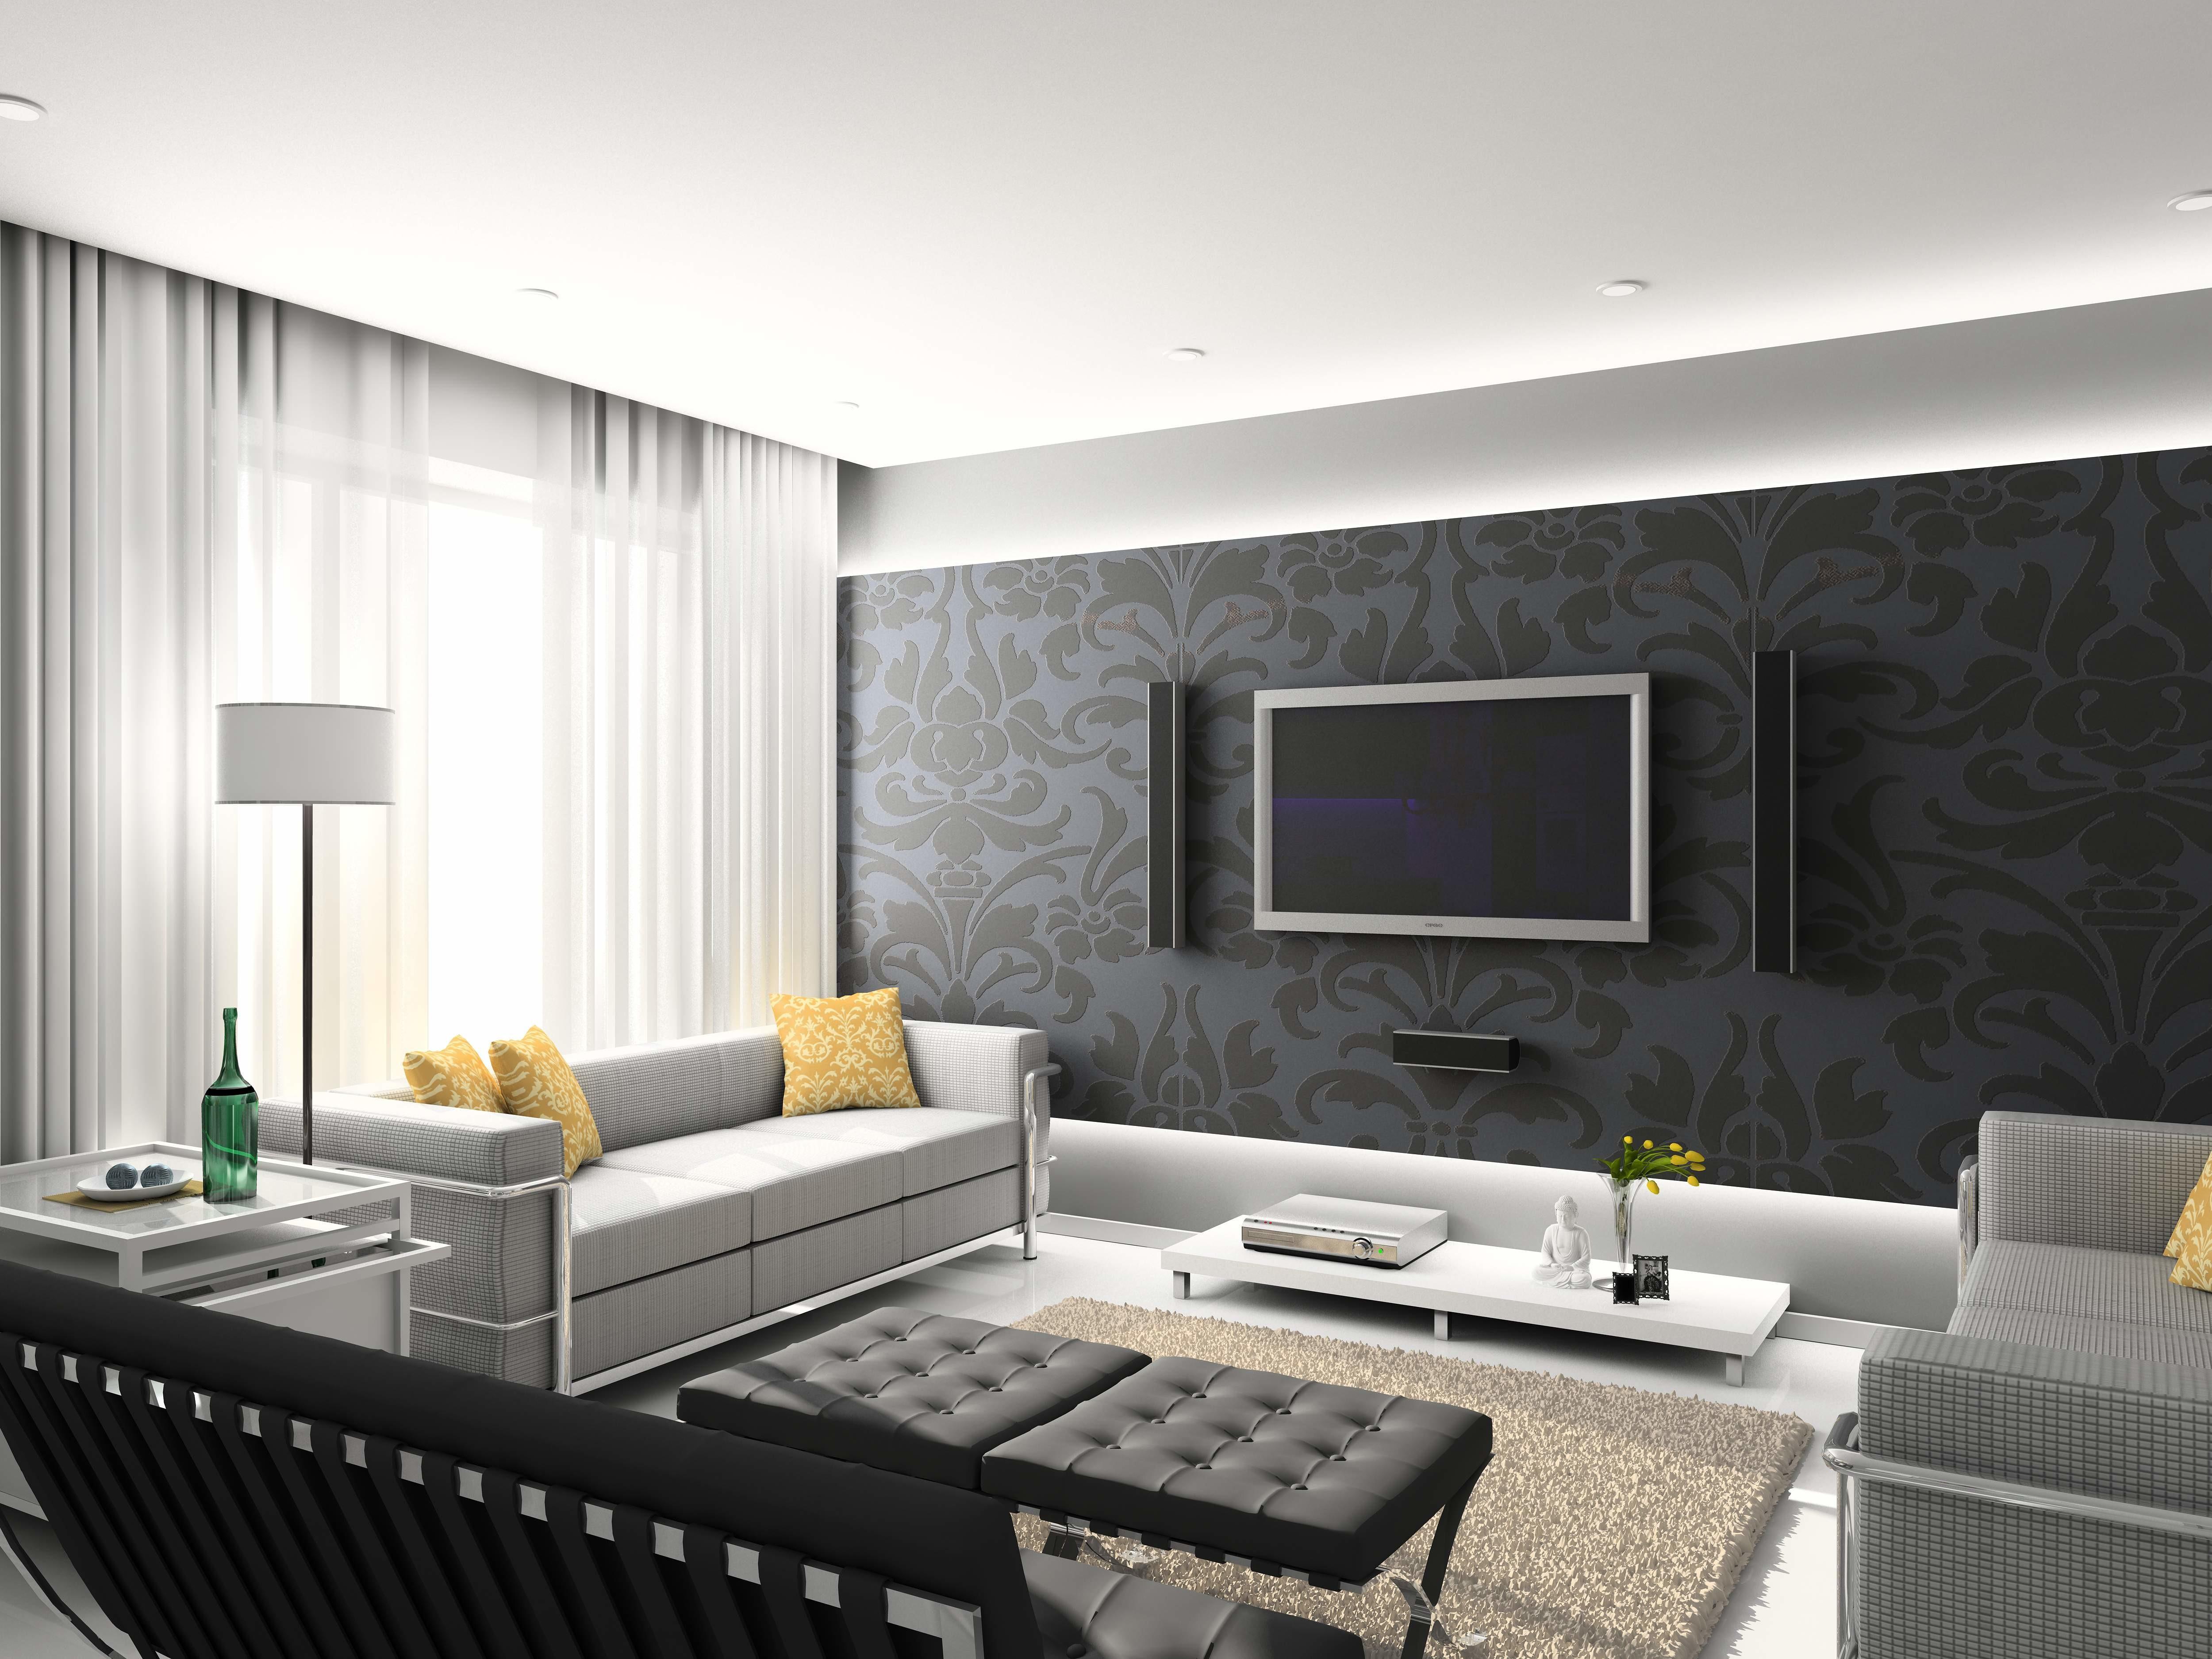 Living Room Designs Make Your Feel Royal